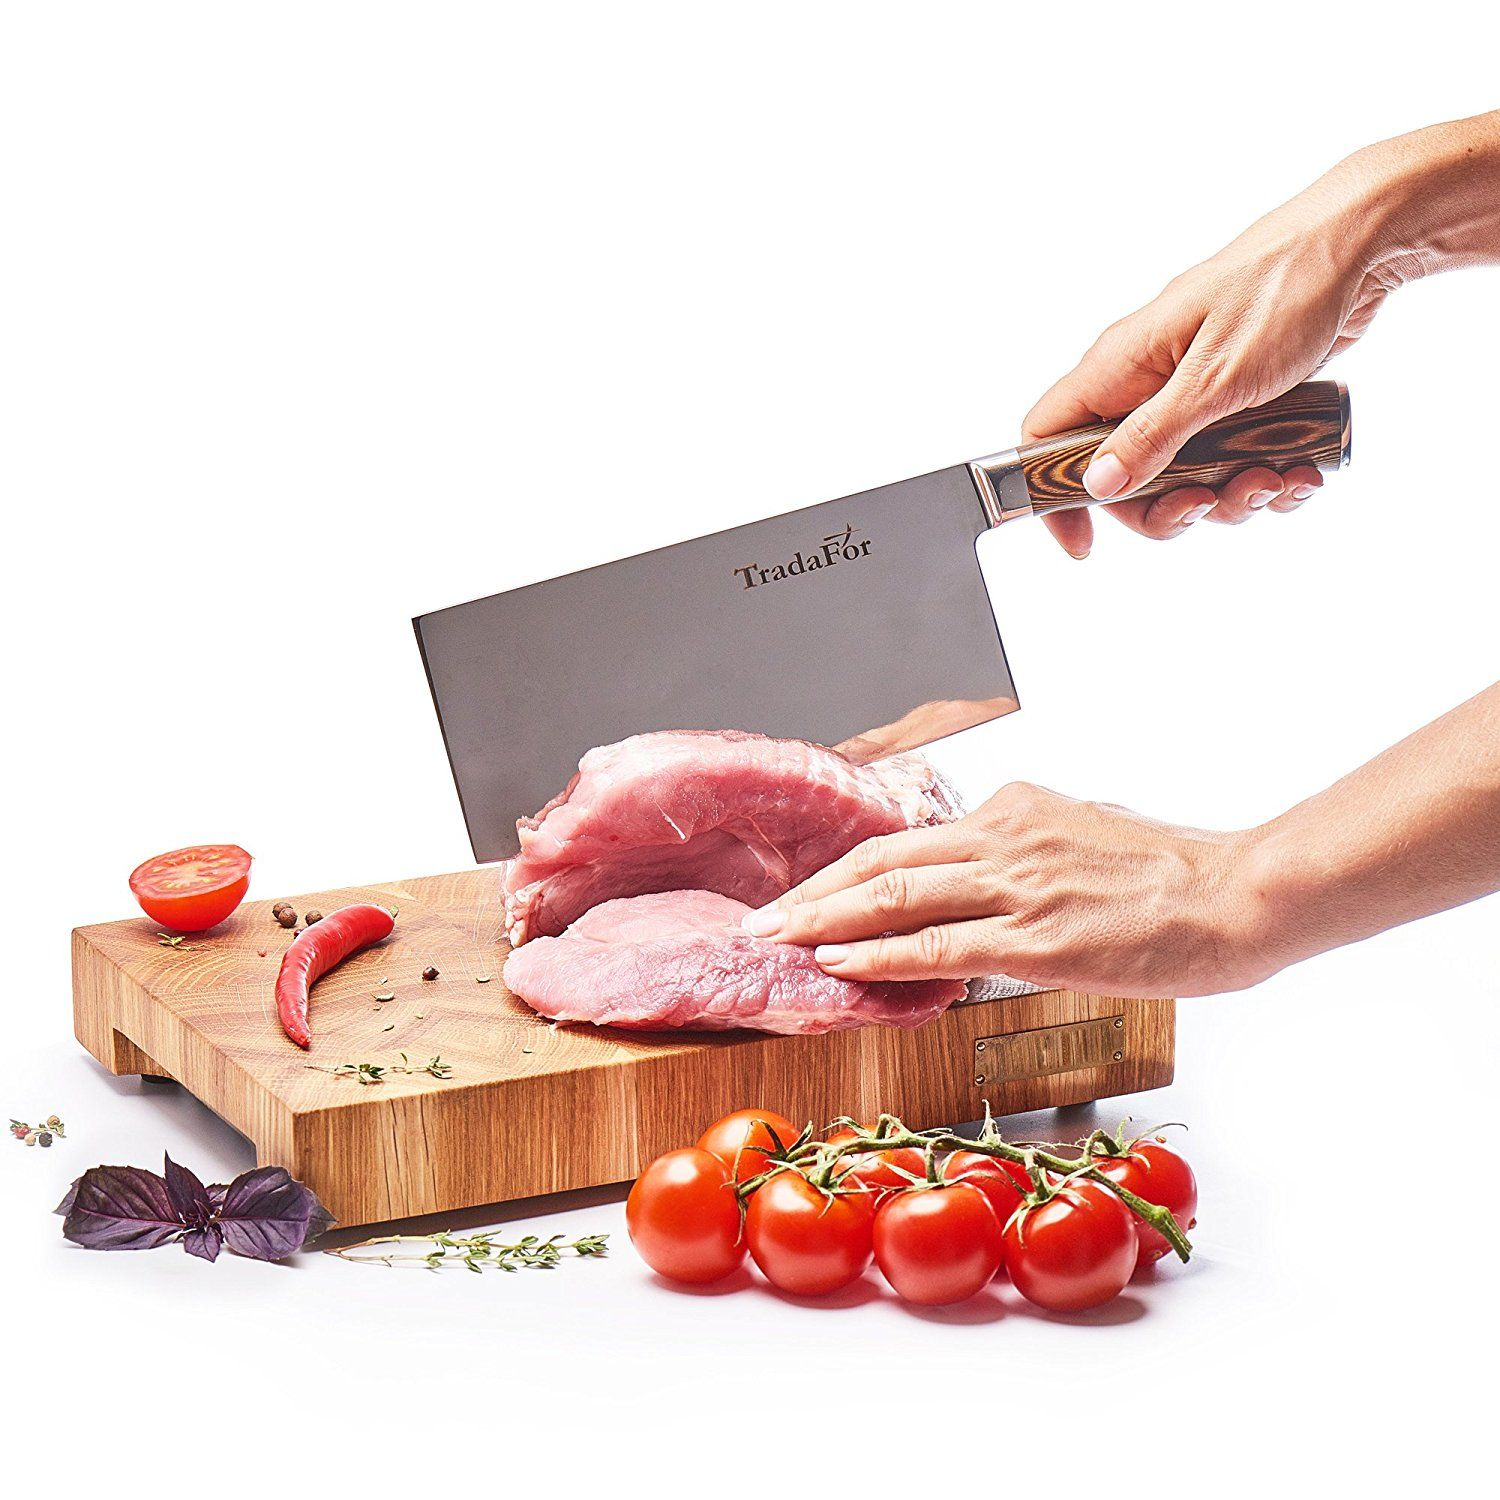 Amazon meat cleaver 25 off 72 inch chef chinese knife amazon meat cleaver 25 off 72 inch chef chinese knife kitchen cutlerykitchen diningchoppermeatknivesstainless steelchineseknifeskitchen publicscrutiny Image collections